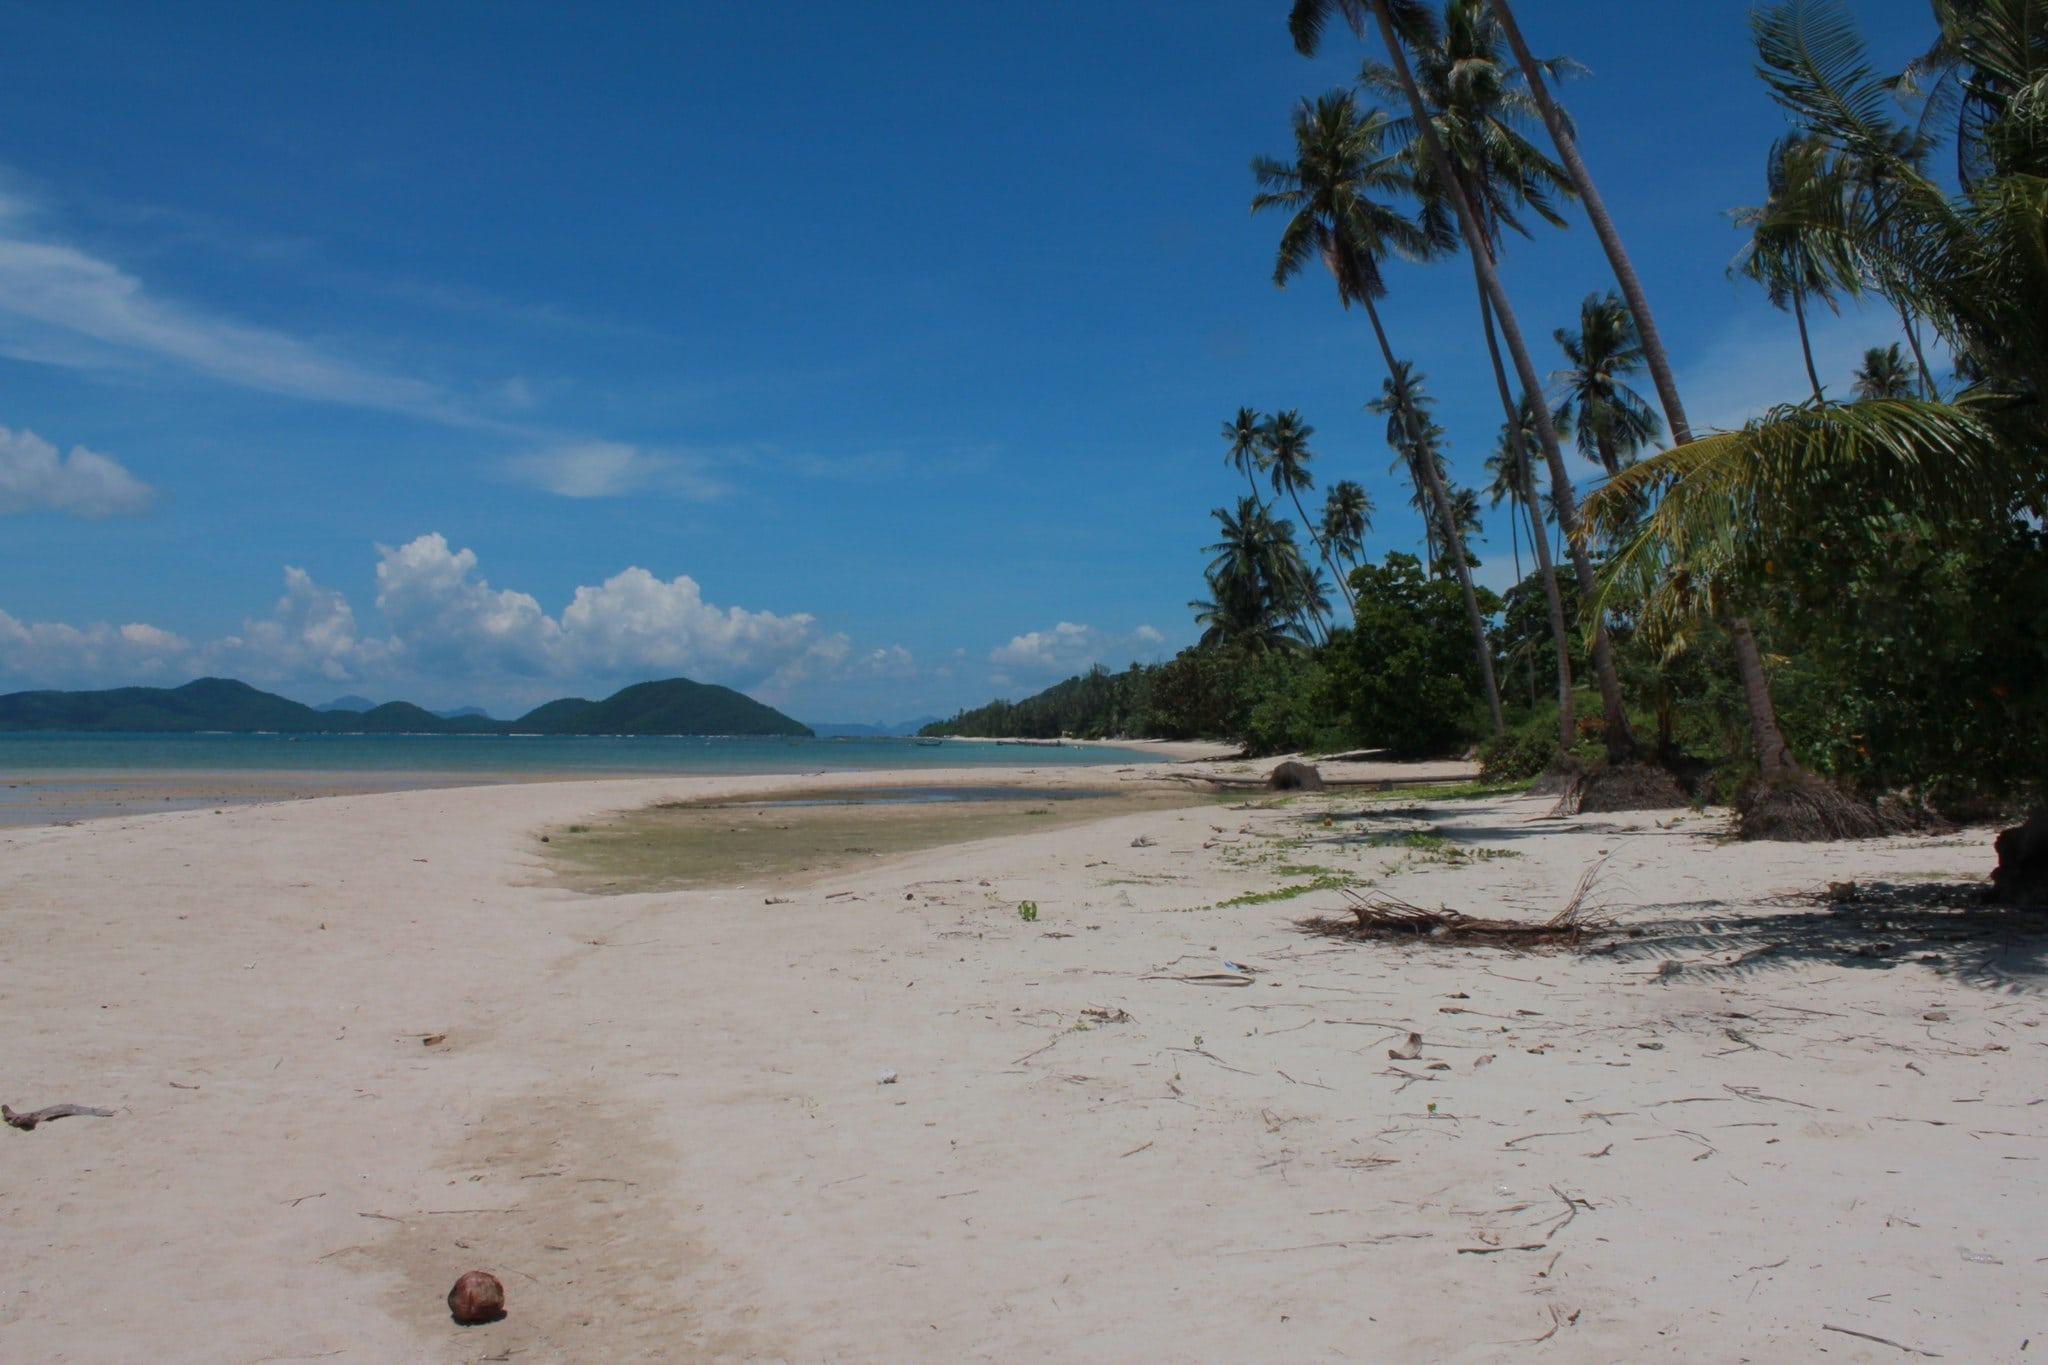 Koh Samui Beach | Vegan Guide to Koh Samui